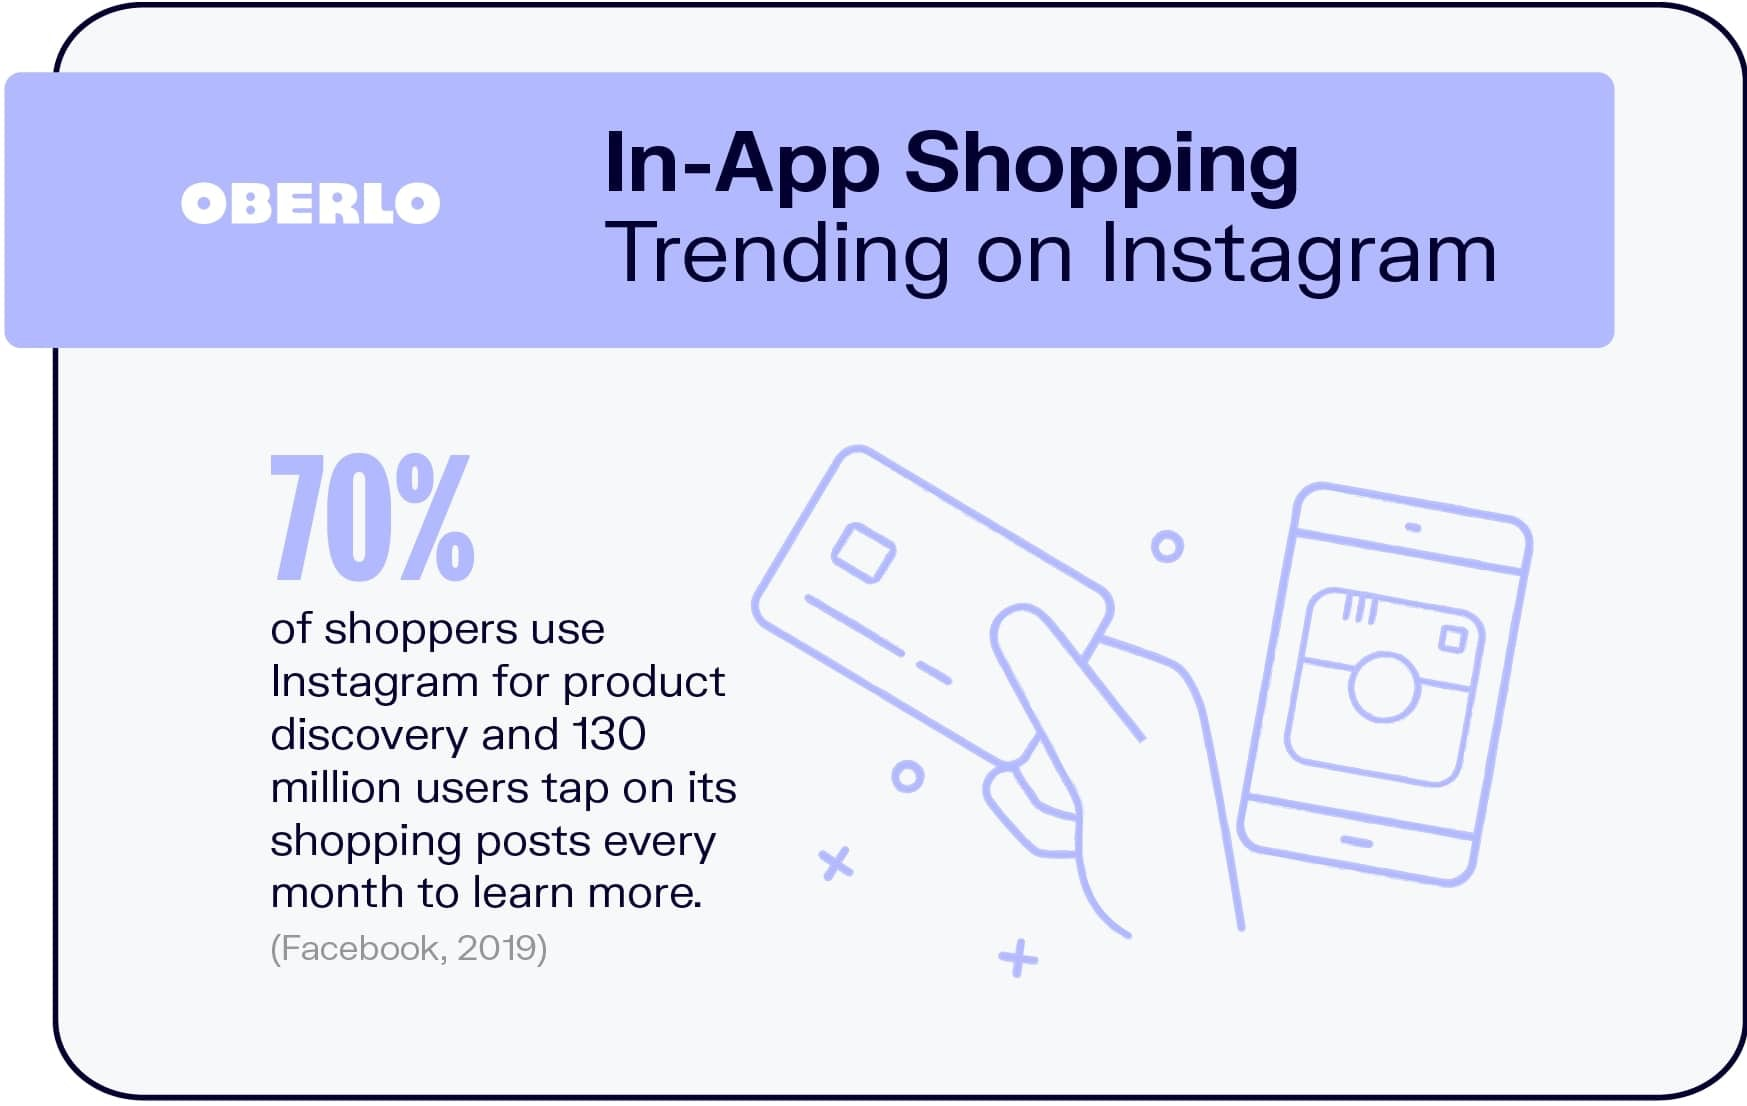 In-App Shopping Trending on Instagram